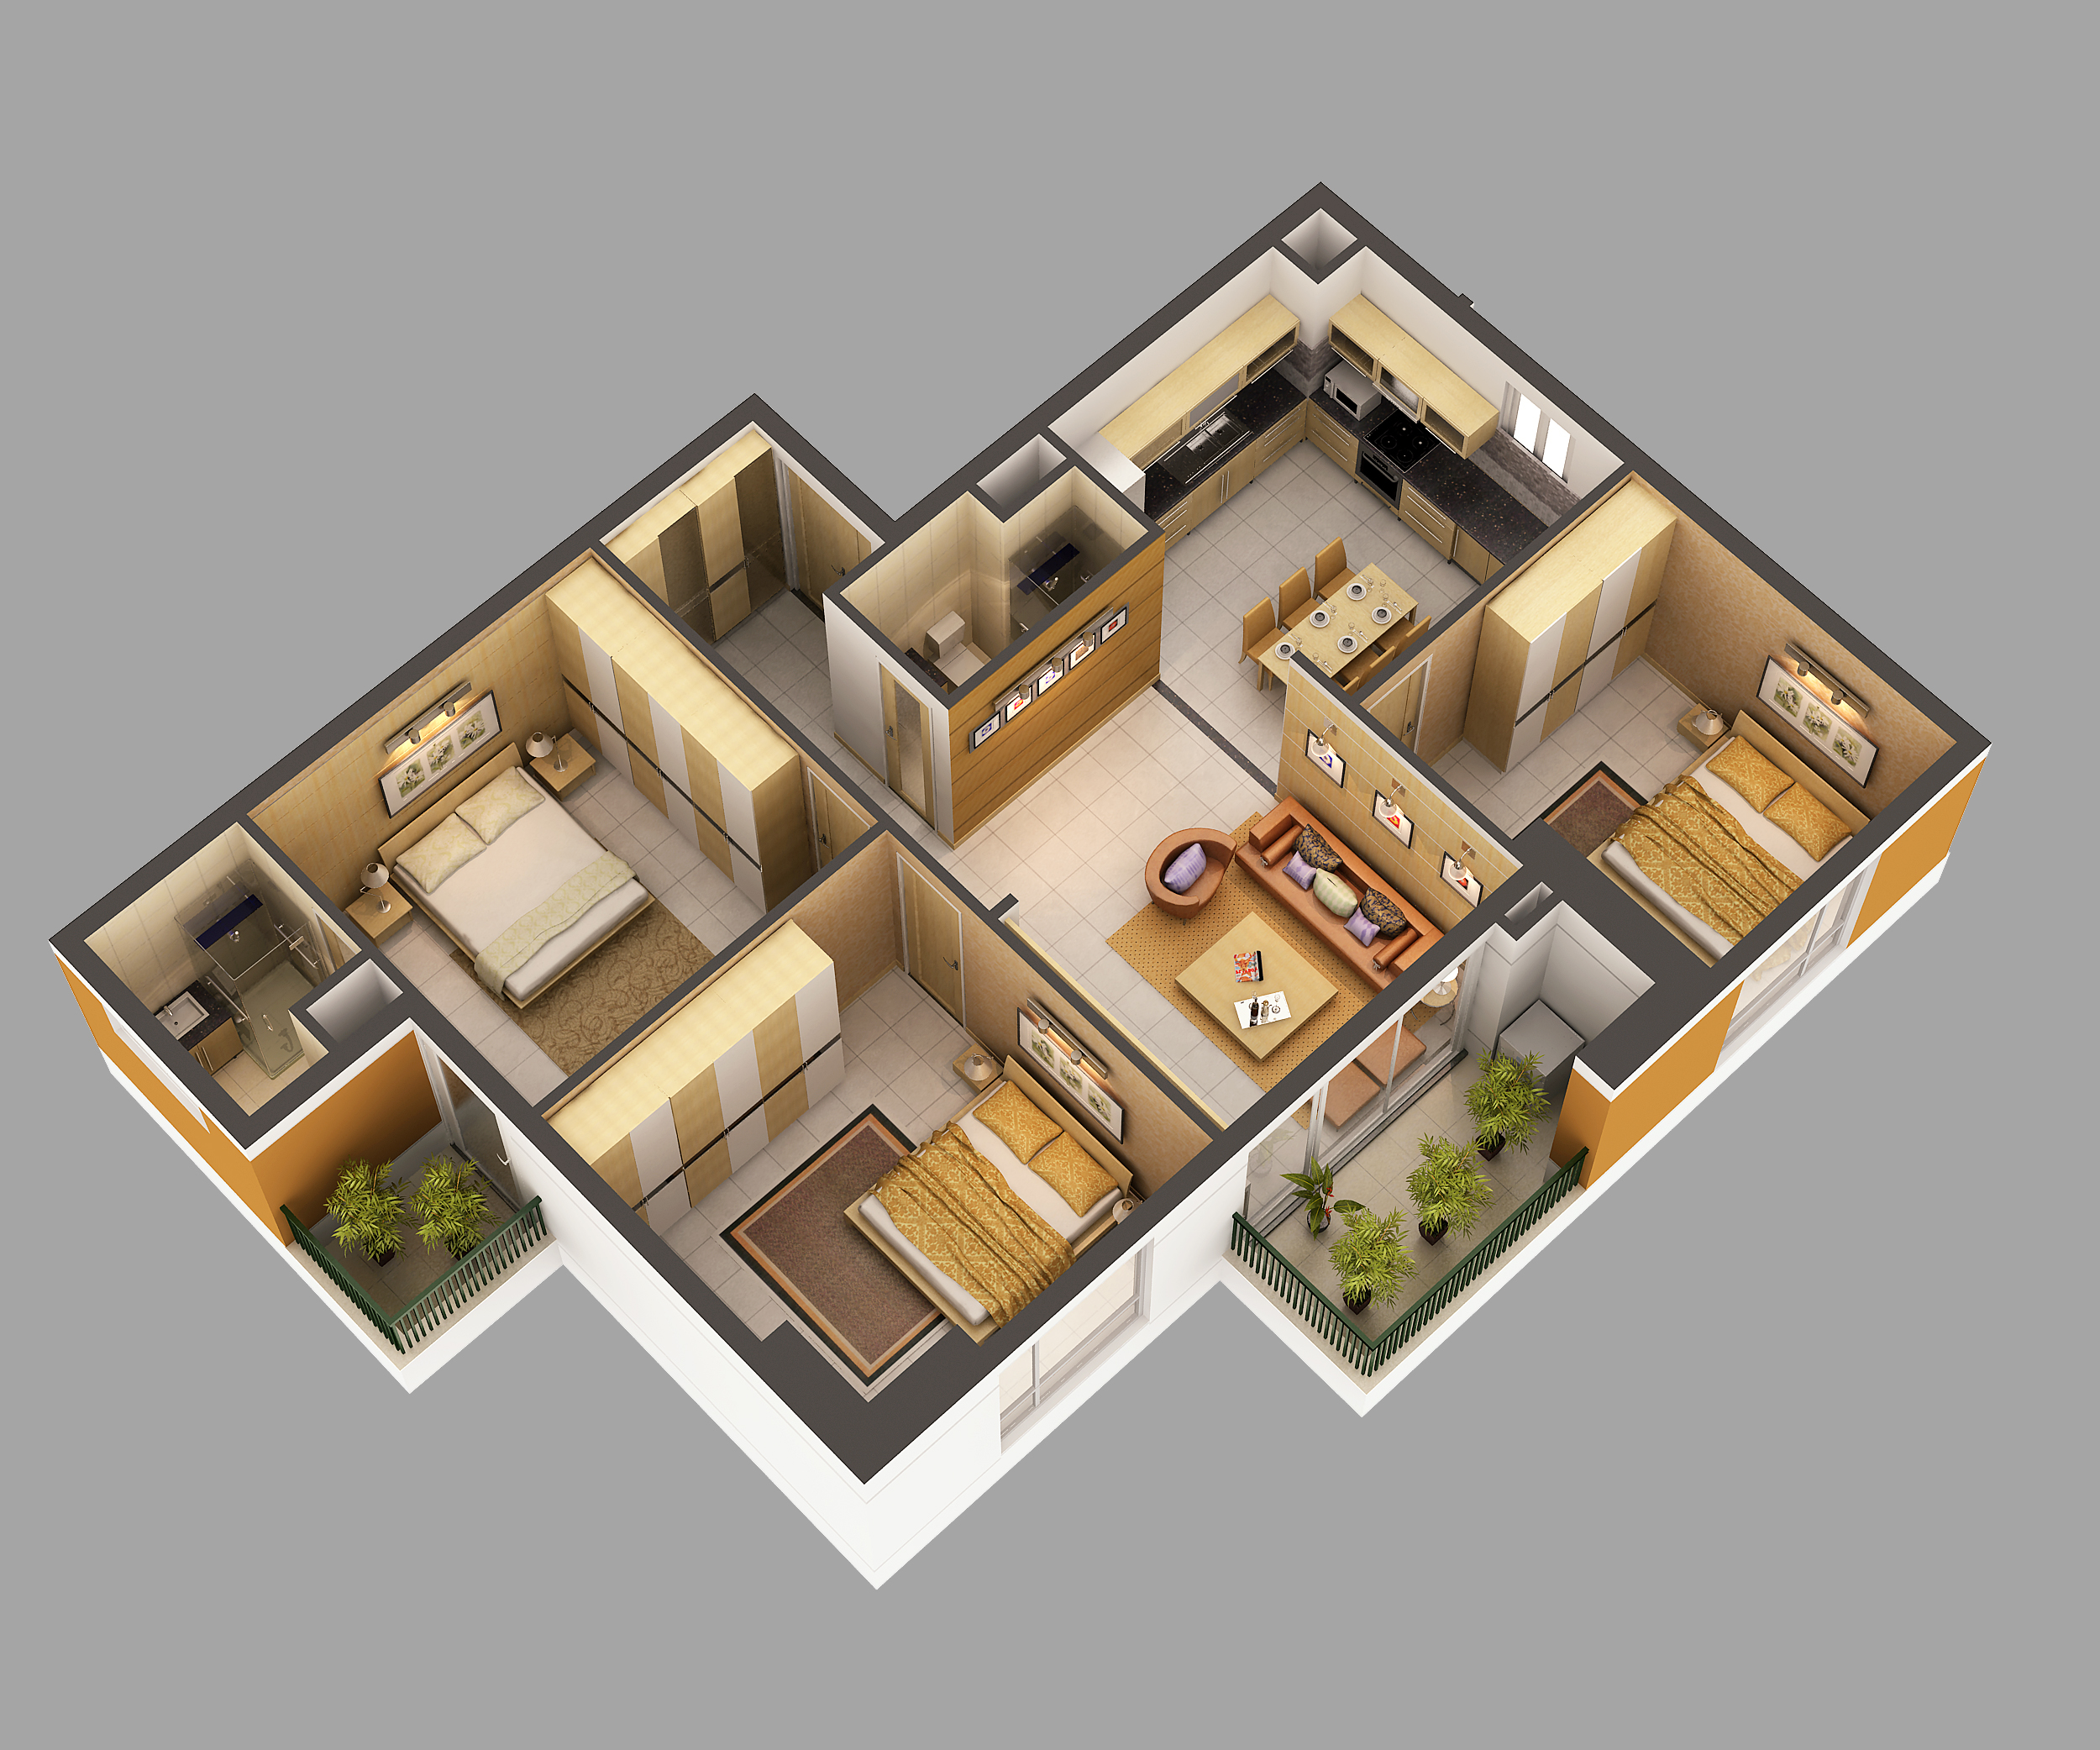 3d model home interior fully furnished 3d model max 1 - Home 3d Model